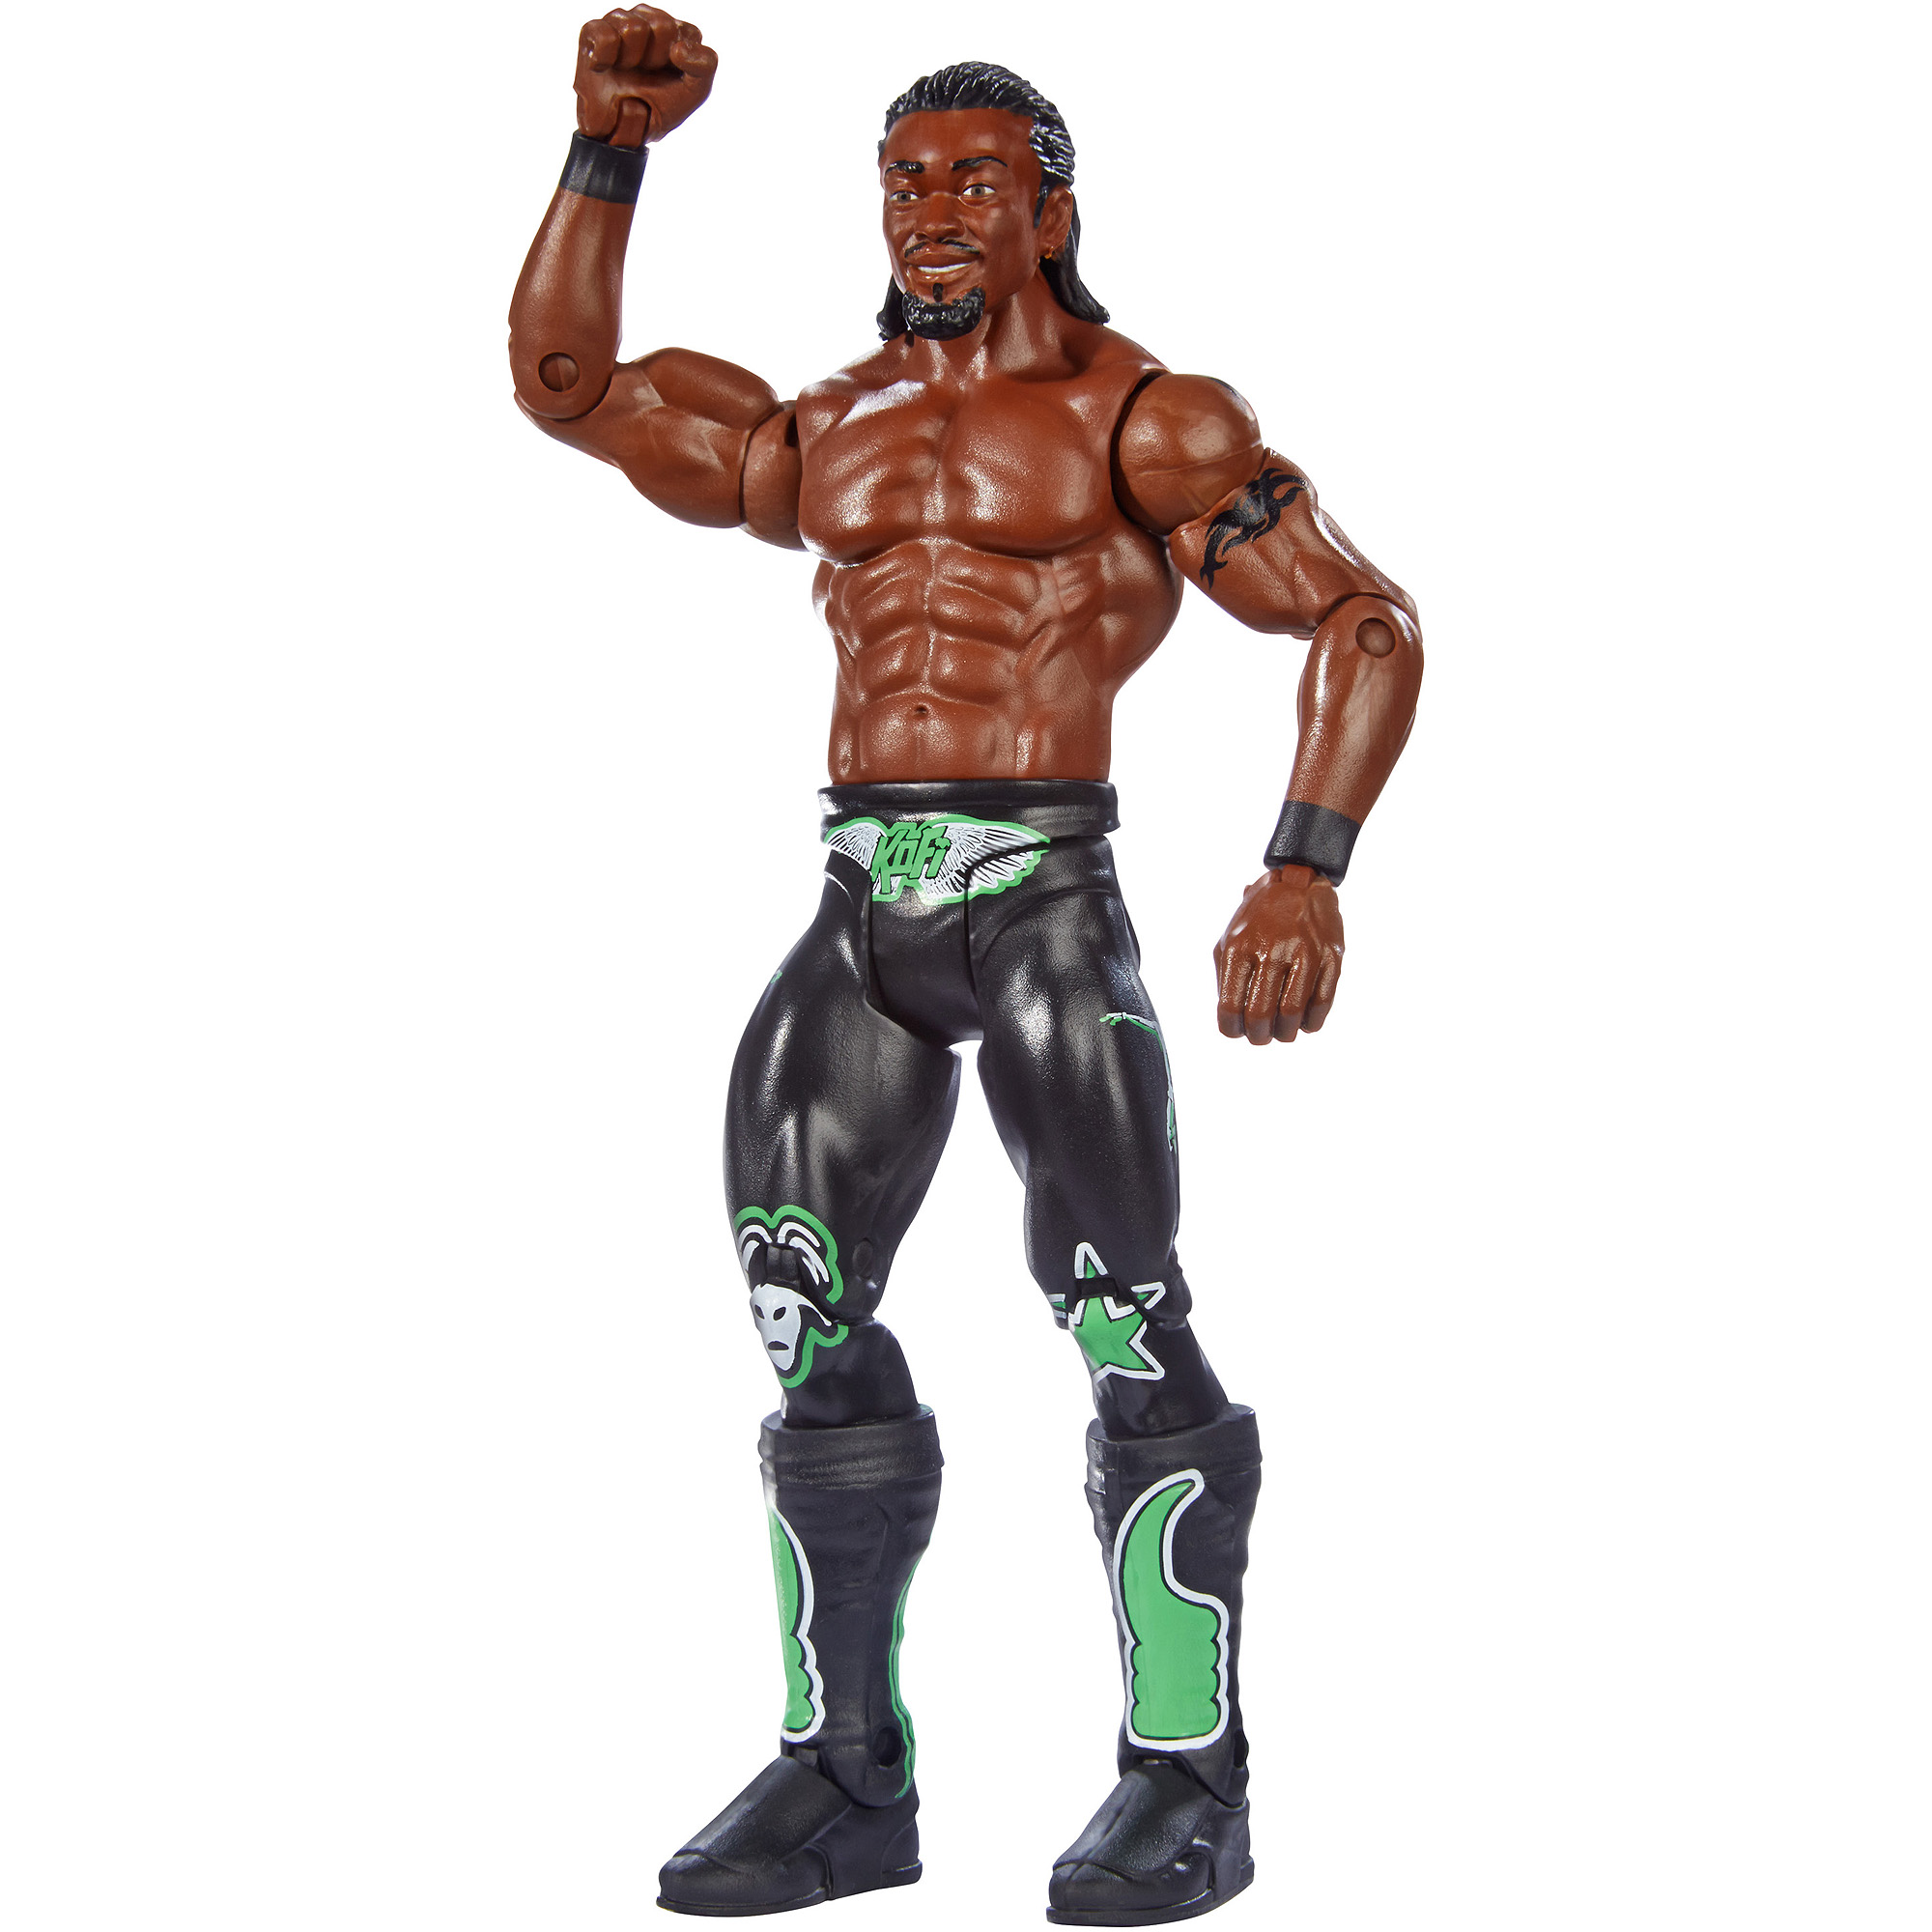 WWE BSC Kofi Kingston Action Figure